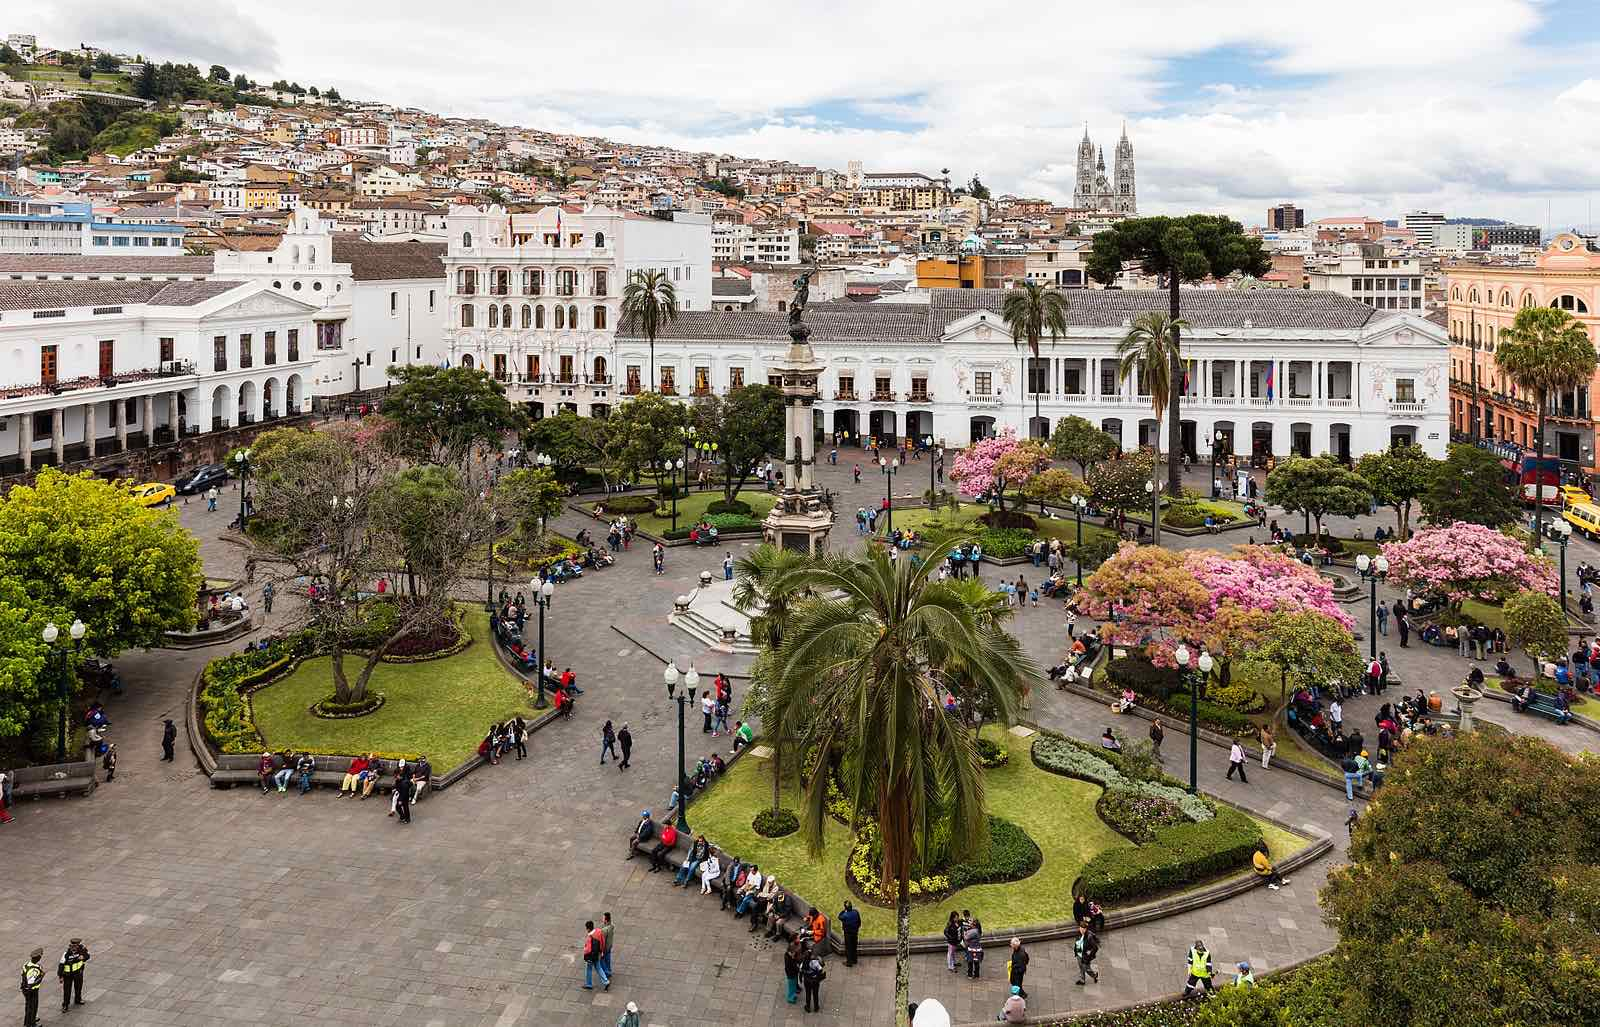 A full view of the square from above. It was a bit cloudy the day we were there and I don't have a drone so here is an image of the plaza by   Diego Delso,    © Diego Delso/WikiCommons